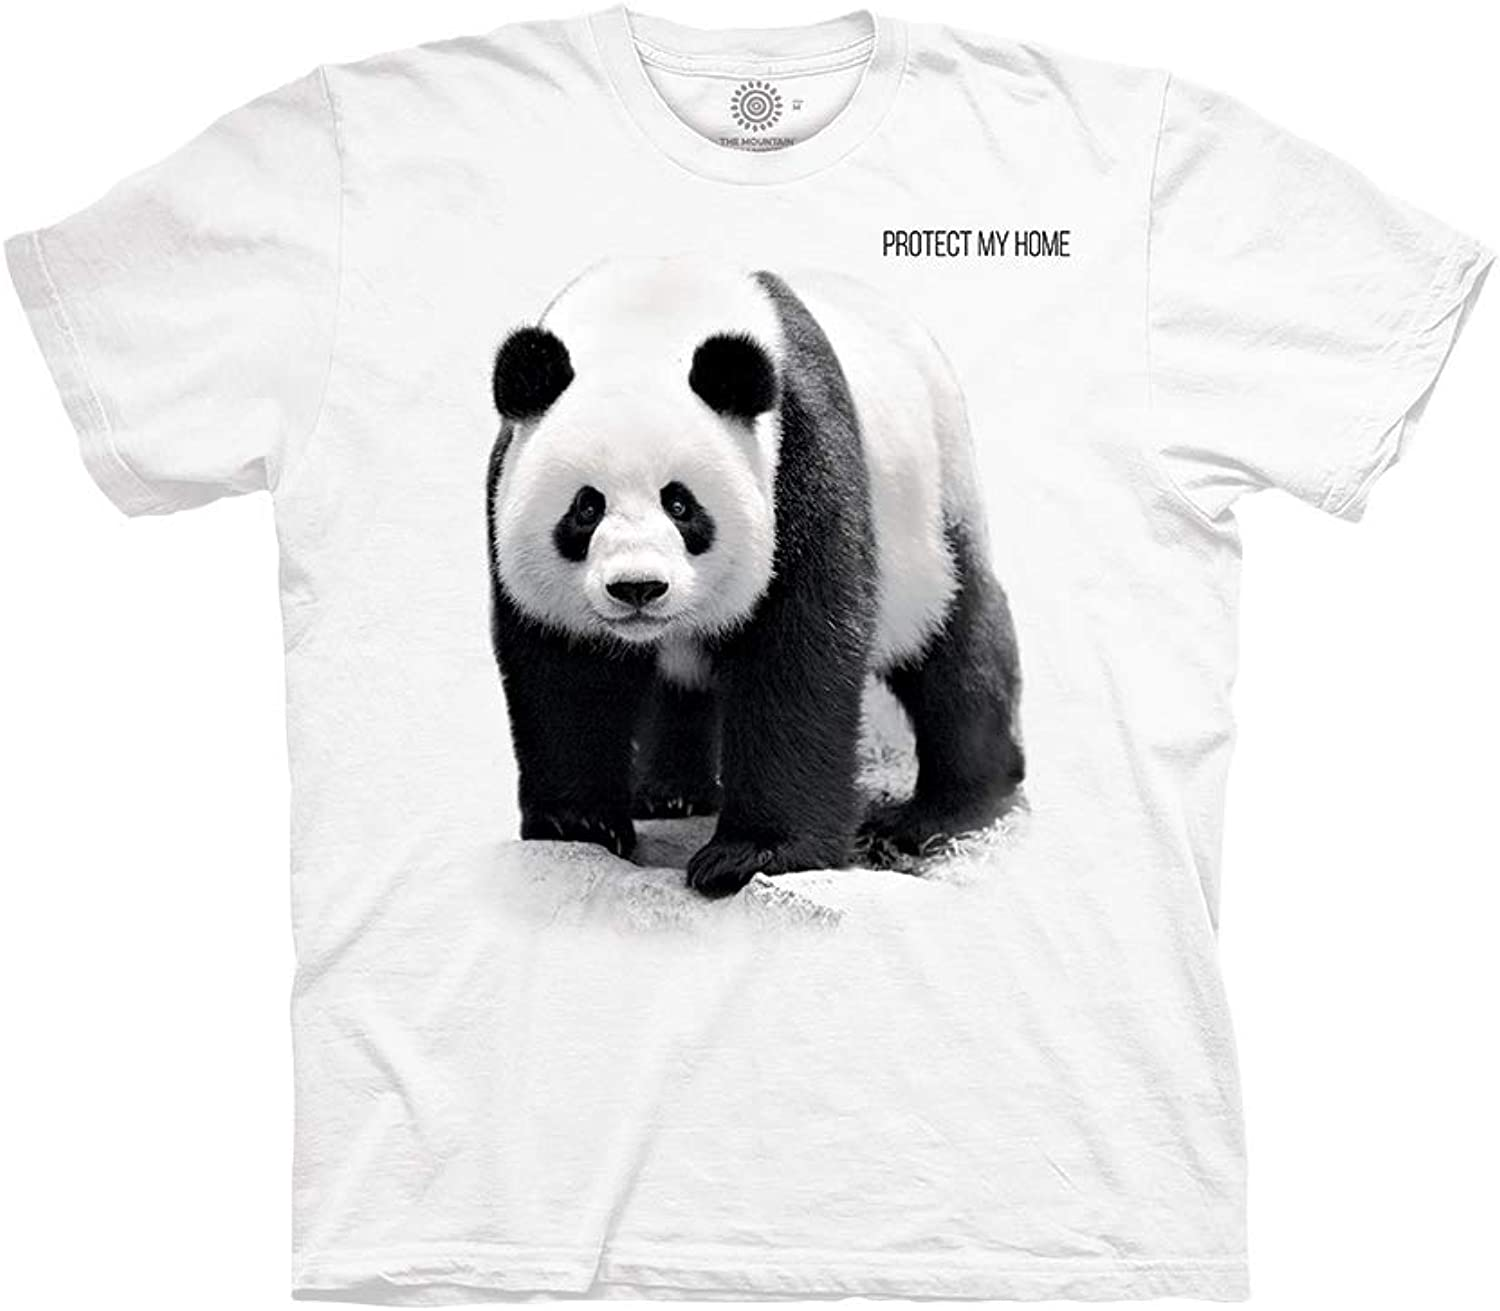 The Mountain Unisex Adult Panda Protect My Home White Animal T Shirt M